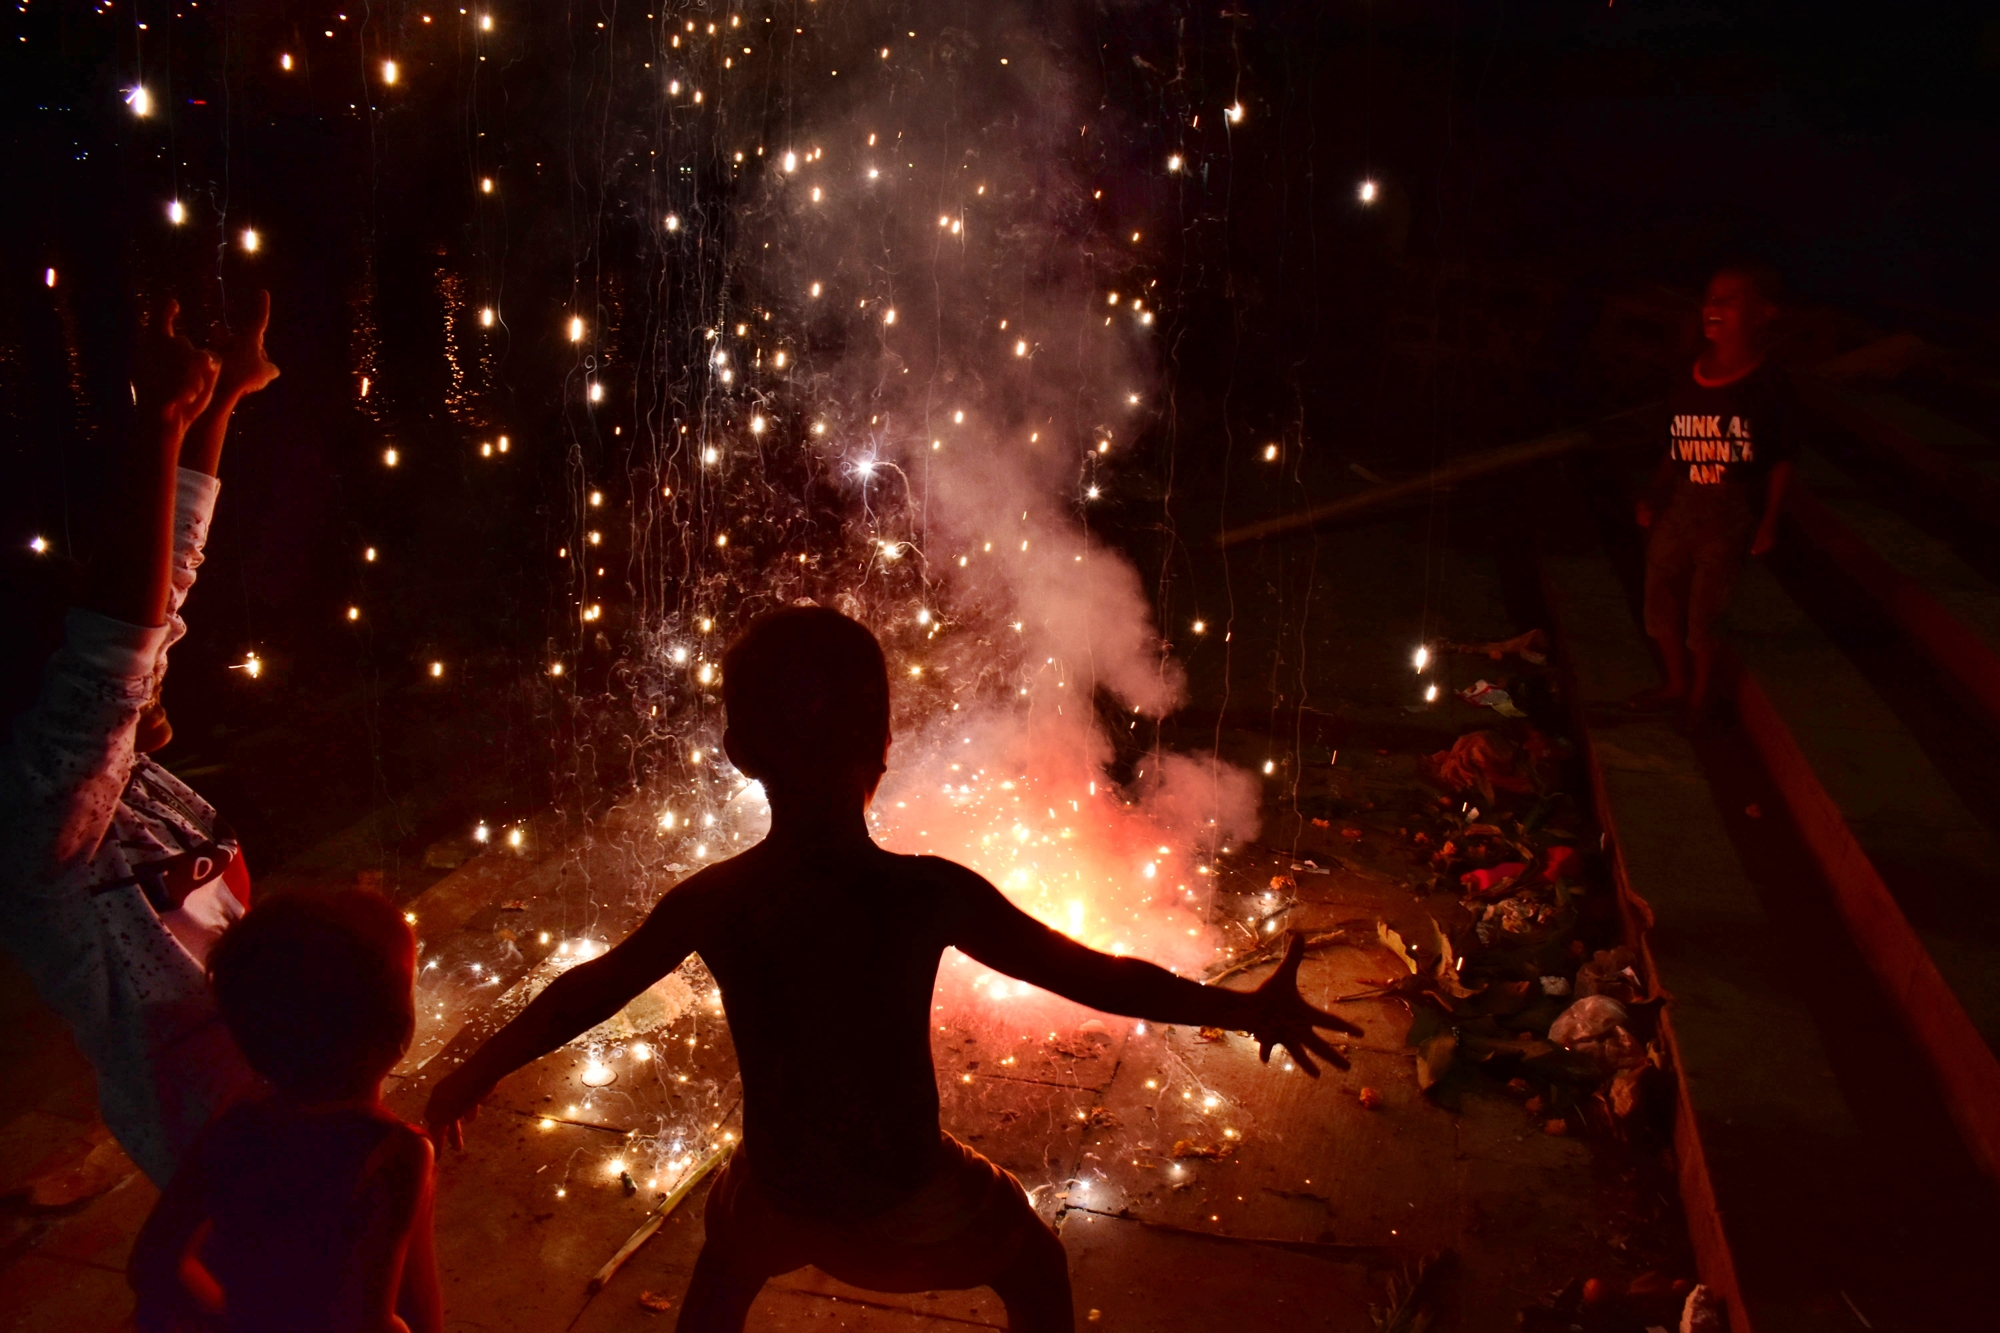 I capture celebration of Diwali festival in my city. Children's celebrated fireworks and enjoying the festival of Diwali night.